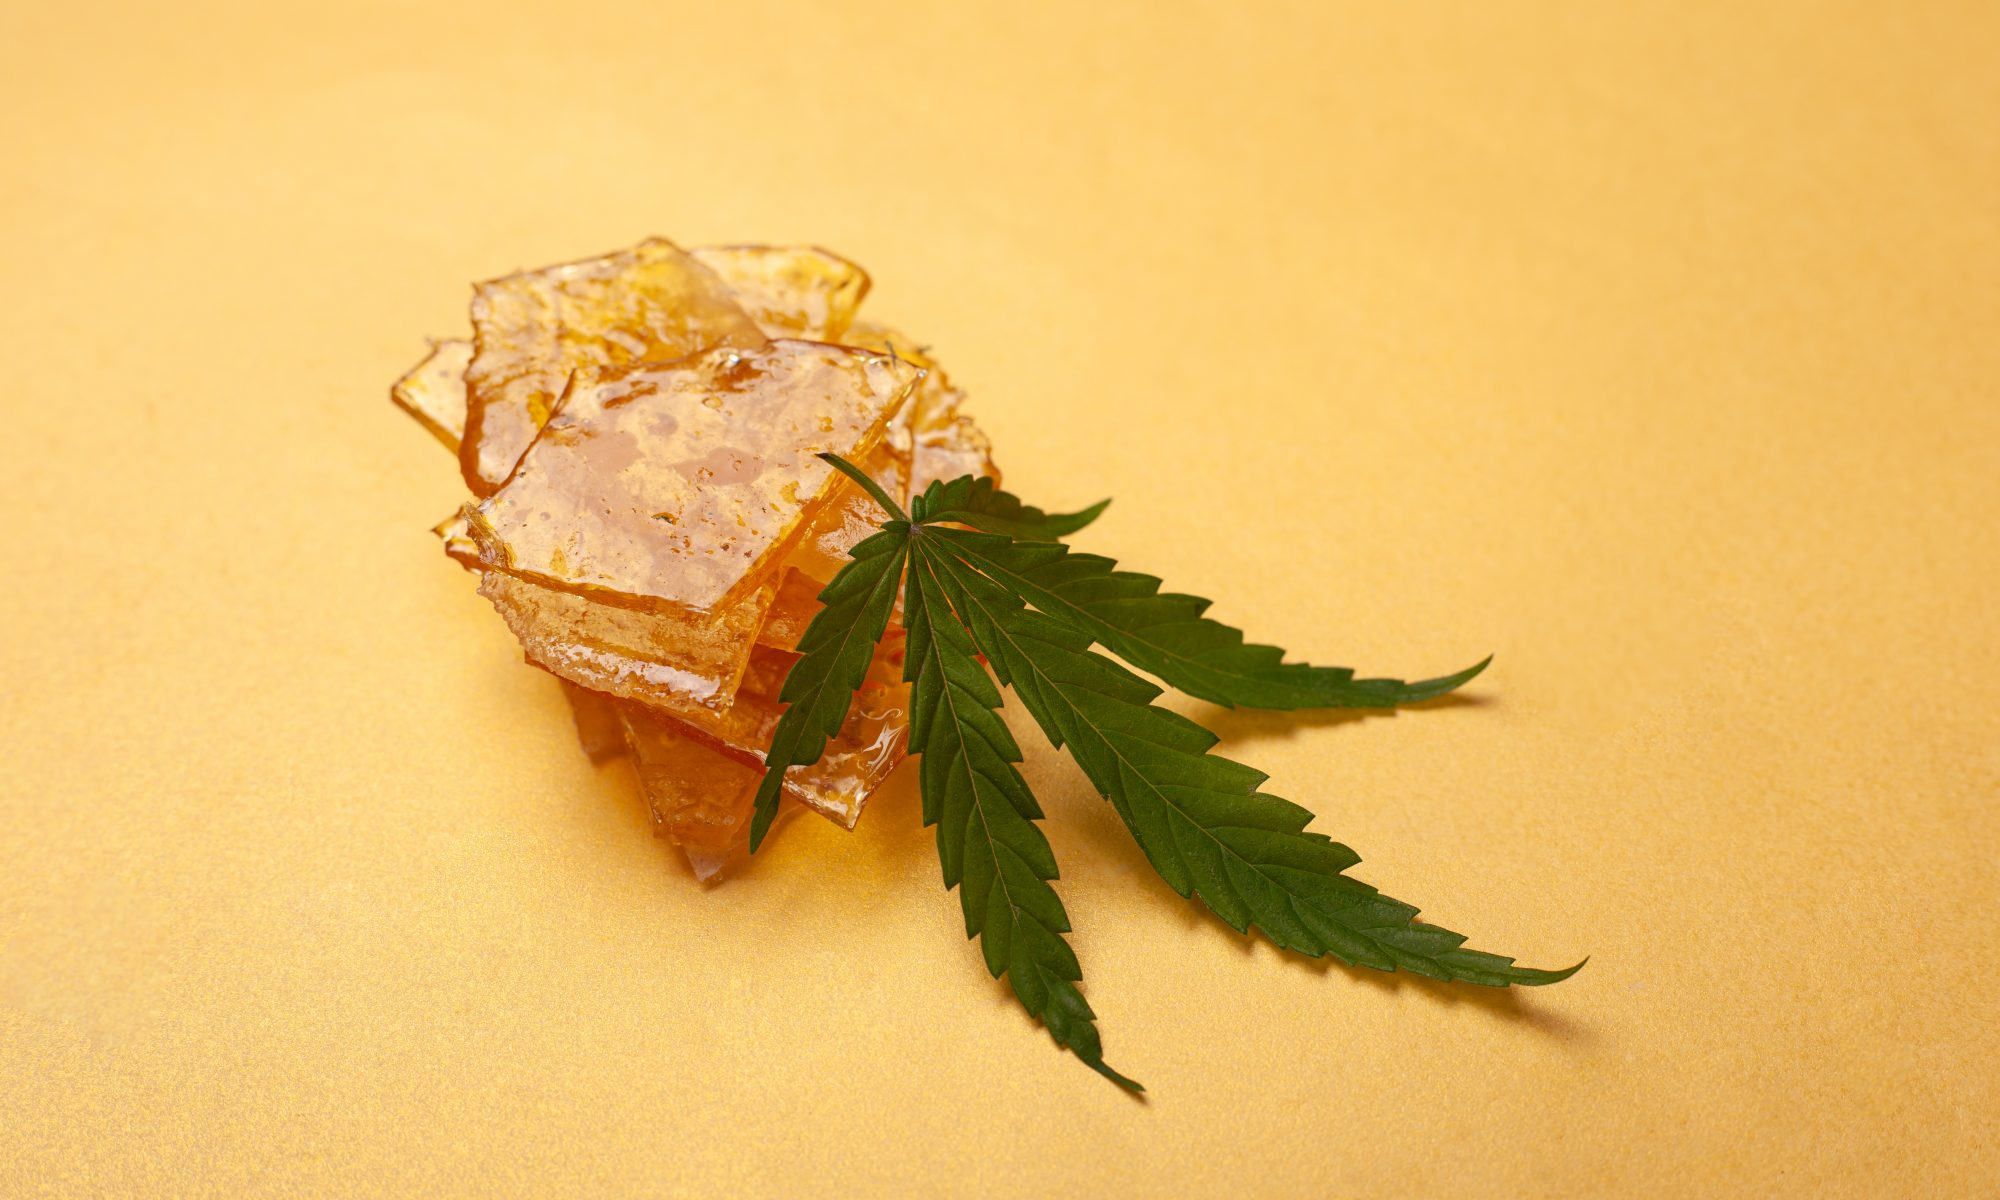 High,Thc,,Pieces,Of,Yellow,Cannabis,Wax,And,Green,Leaf,